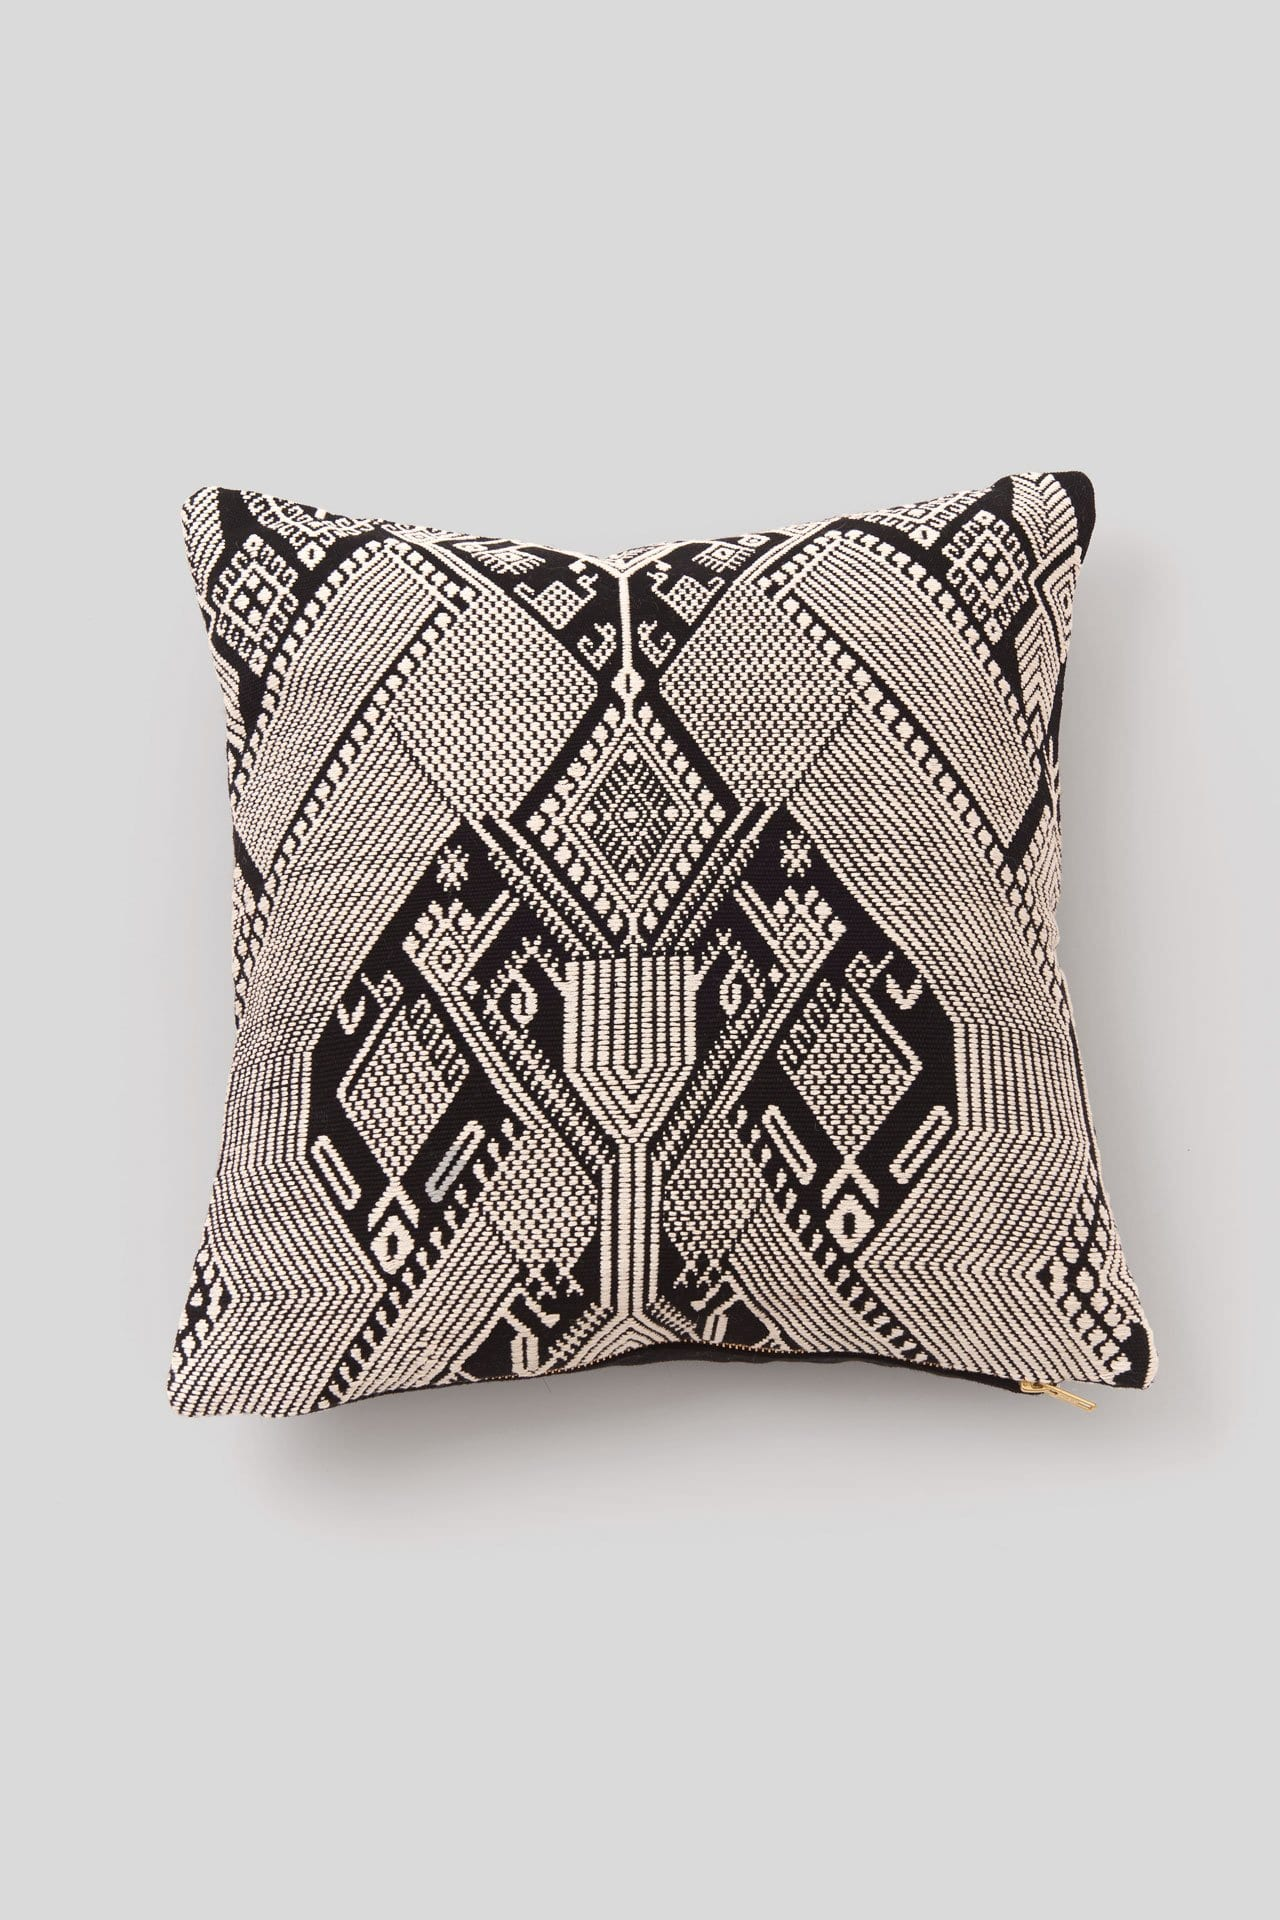 BROCADO QUETZAL BLACK PILLOW